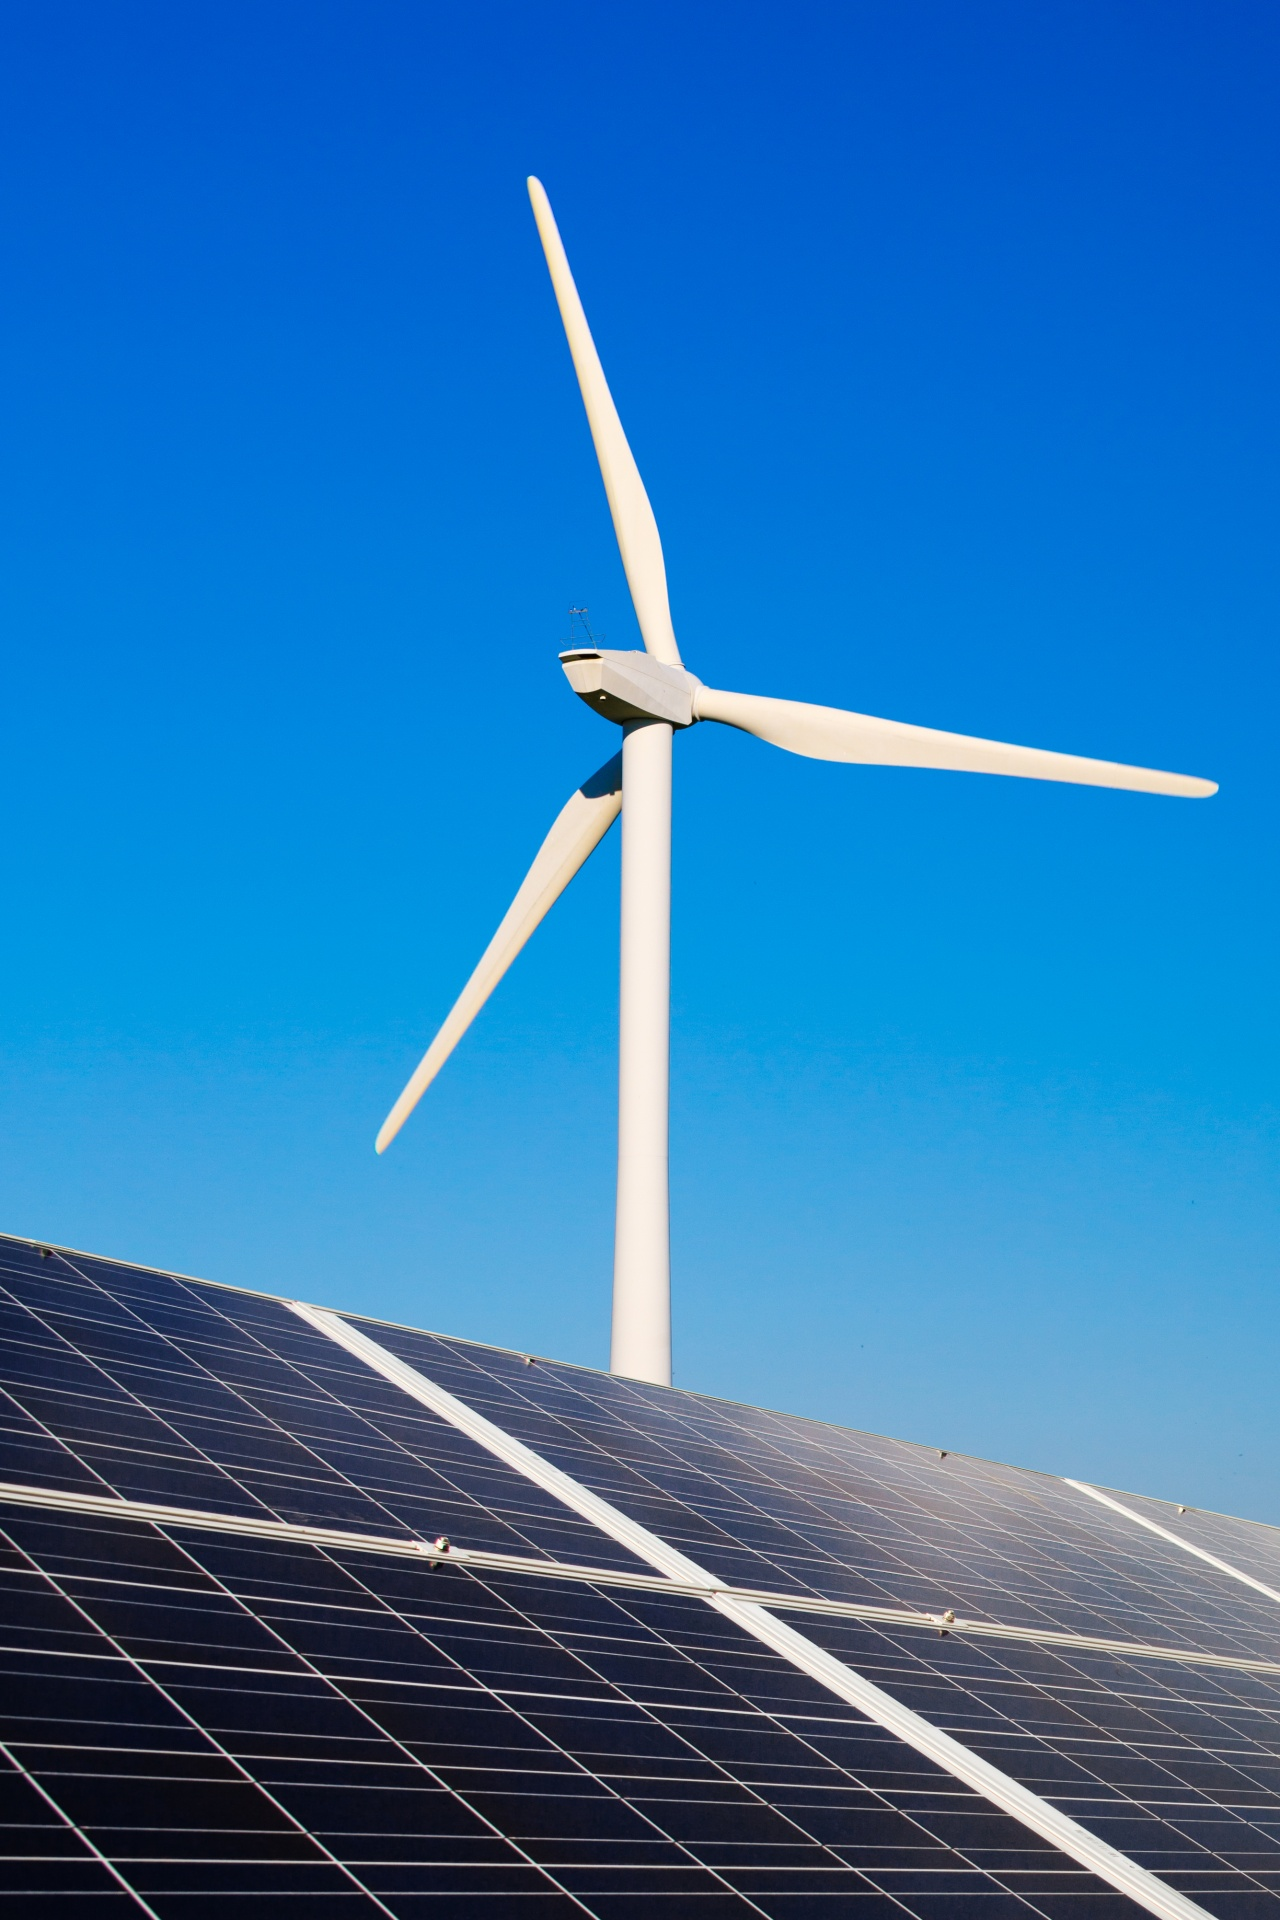 What is a good energy stock to buy?